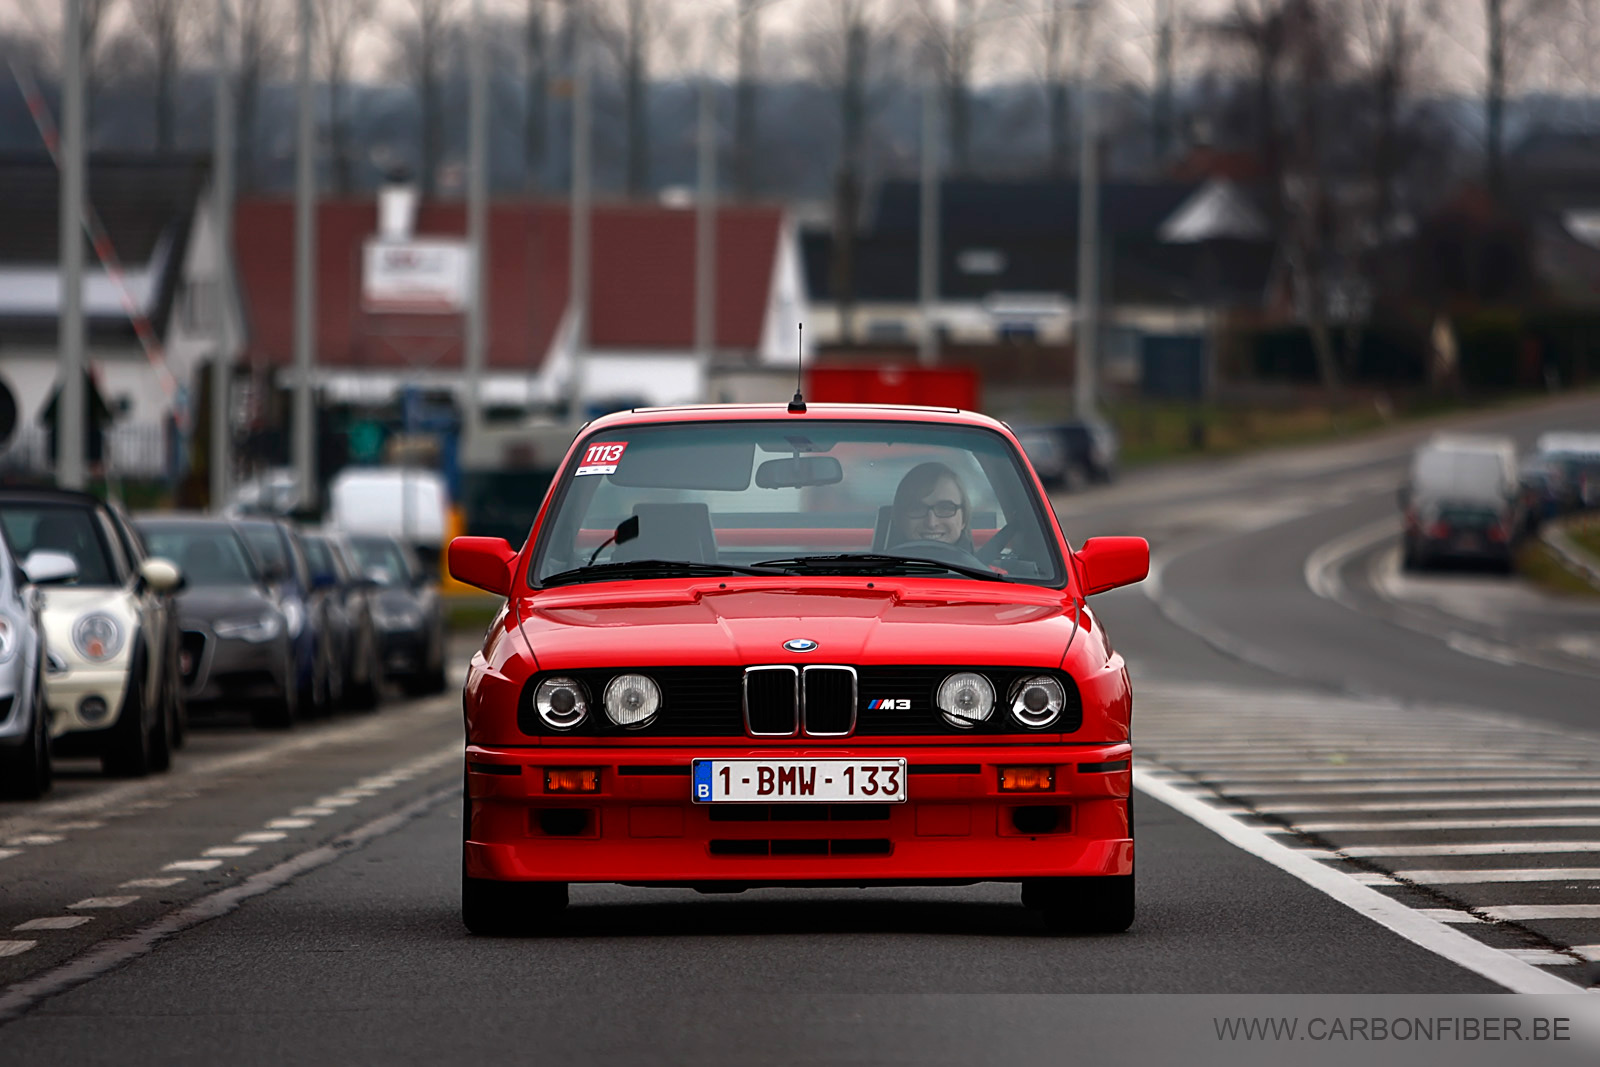 1991 Bmw M3 (e30) - pictures, information and specs - Auto ...